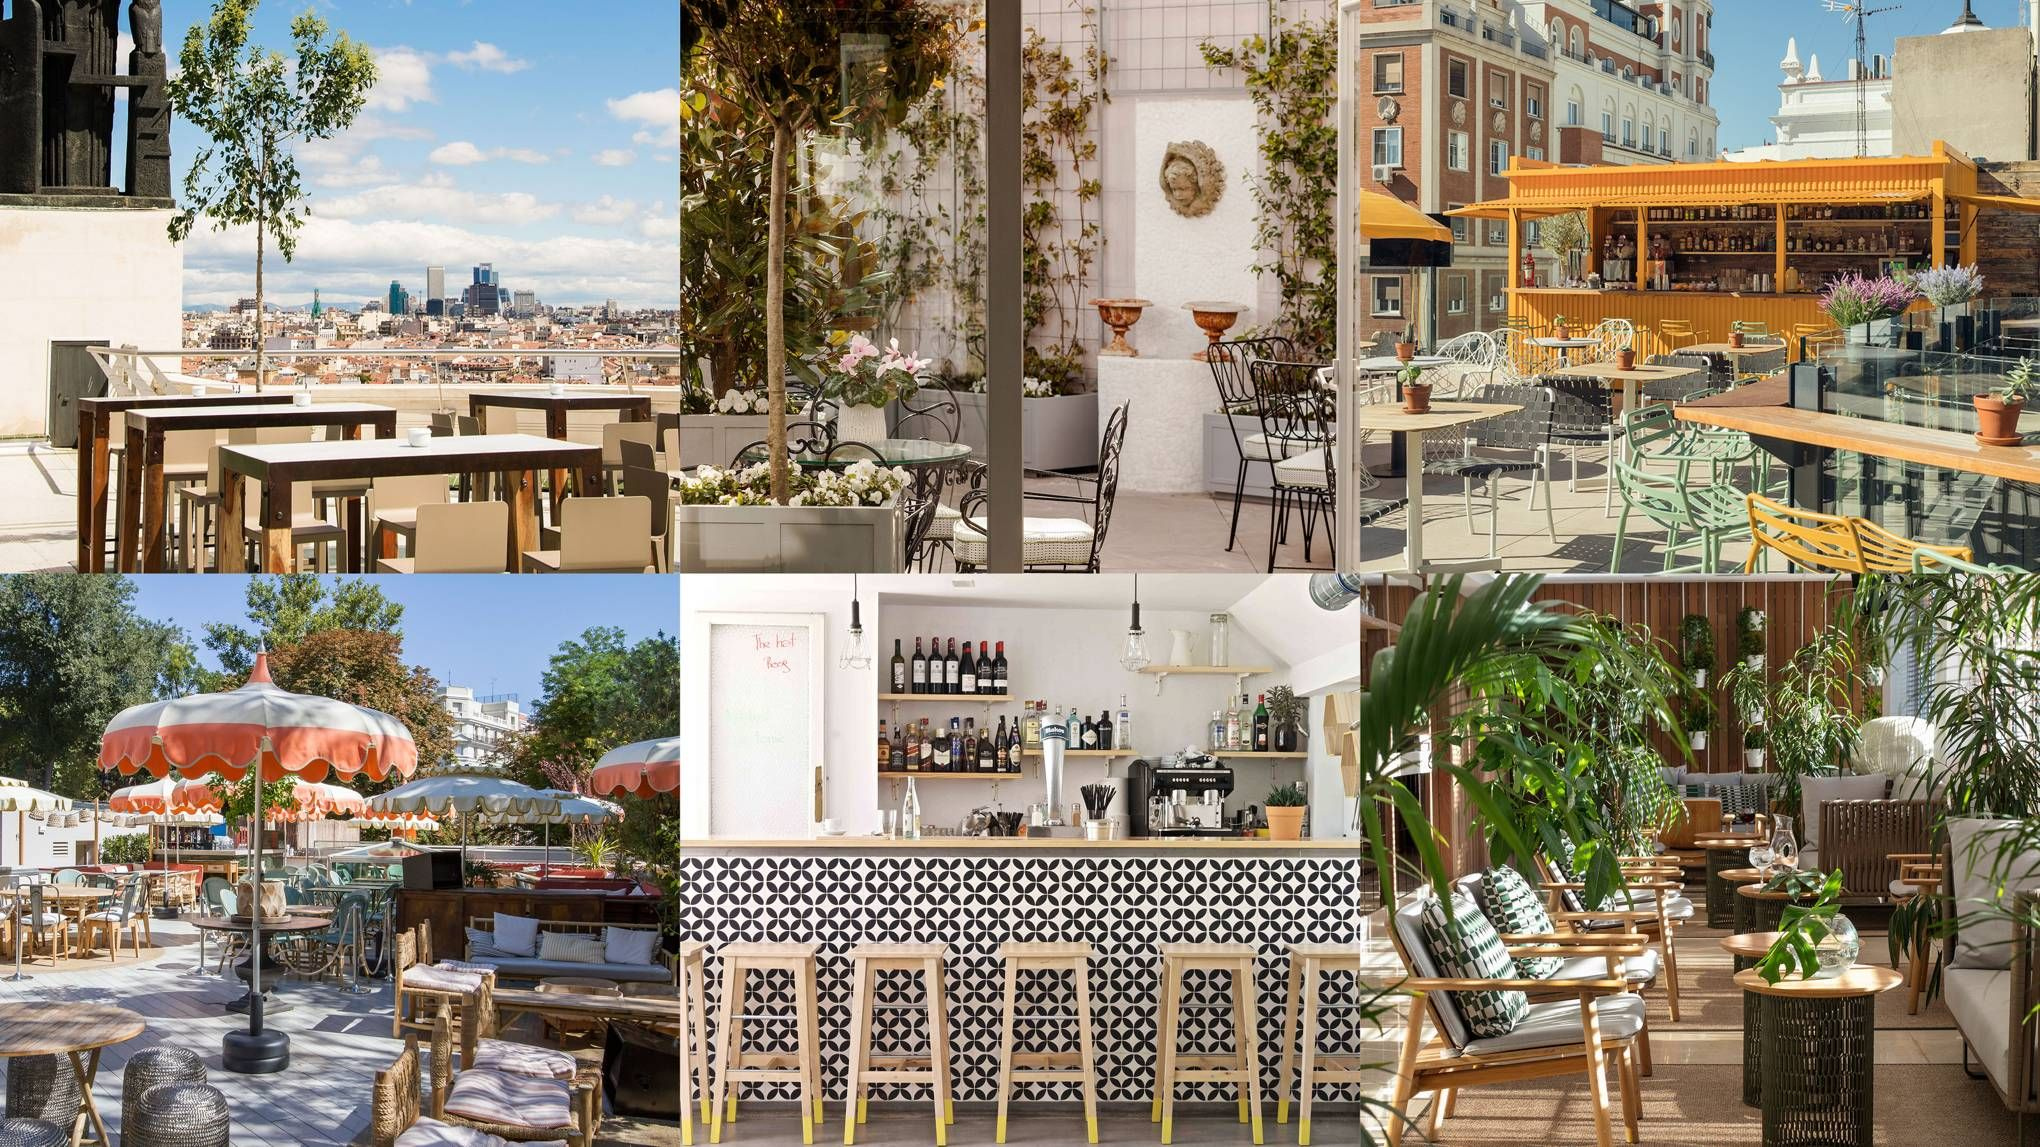 10 best rooftop bars in Madrid | Best rooftop bars, Madrid ...